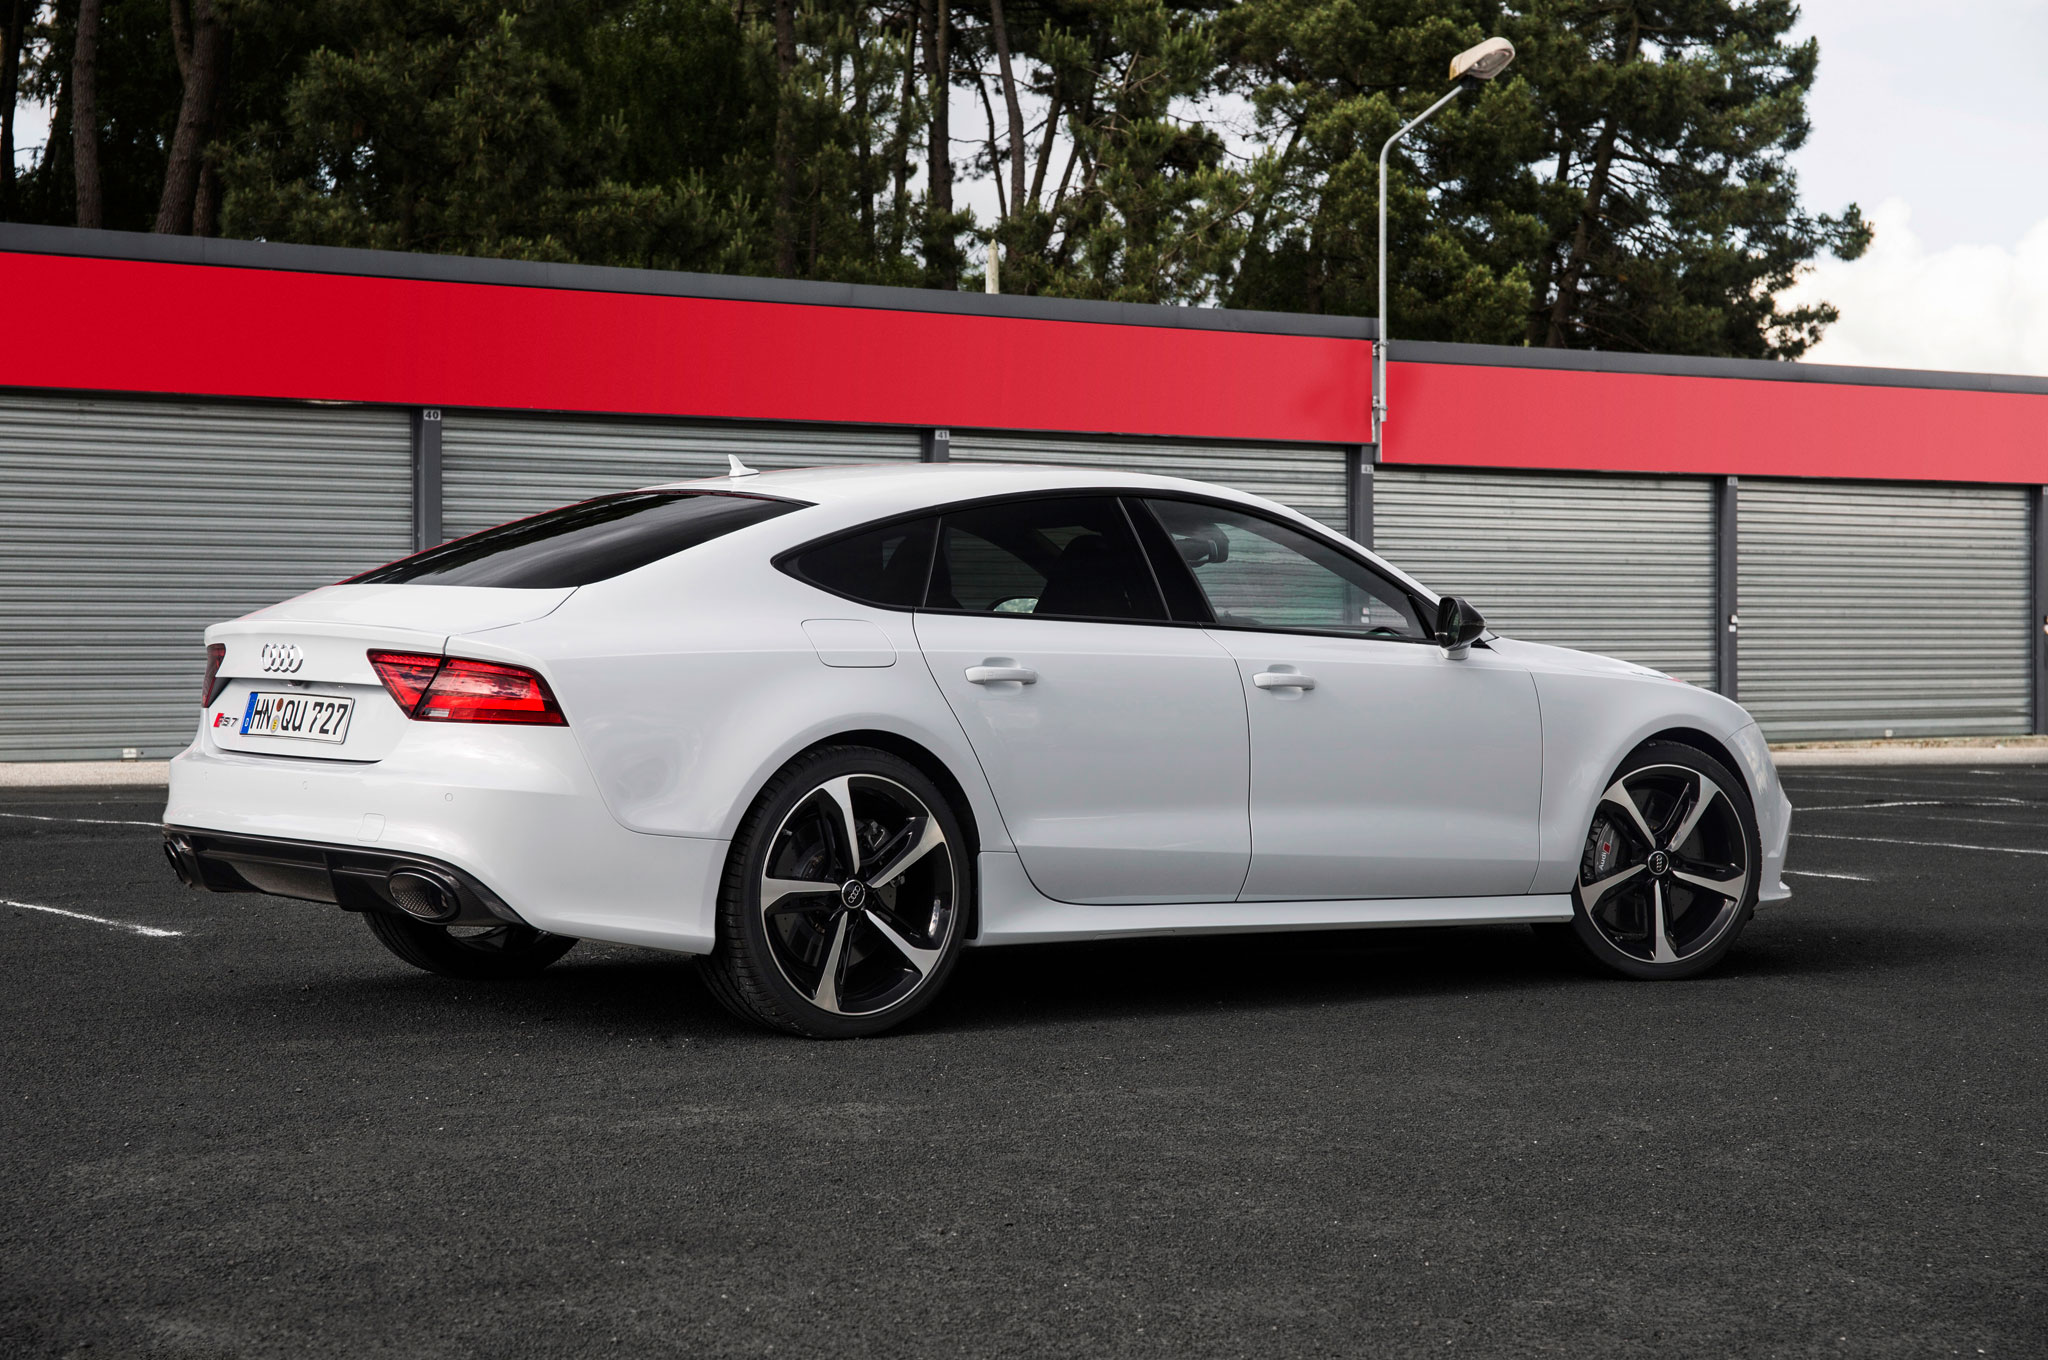 rs7 - Car Wallpapers For The Android,Iphone 6 ,Samsung S5 ,Desktop ,Mobile 1